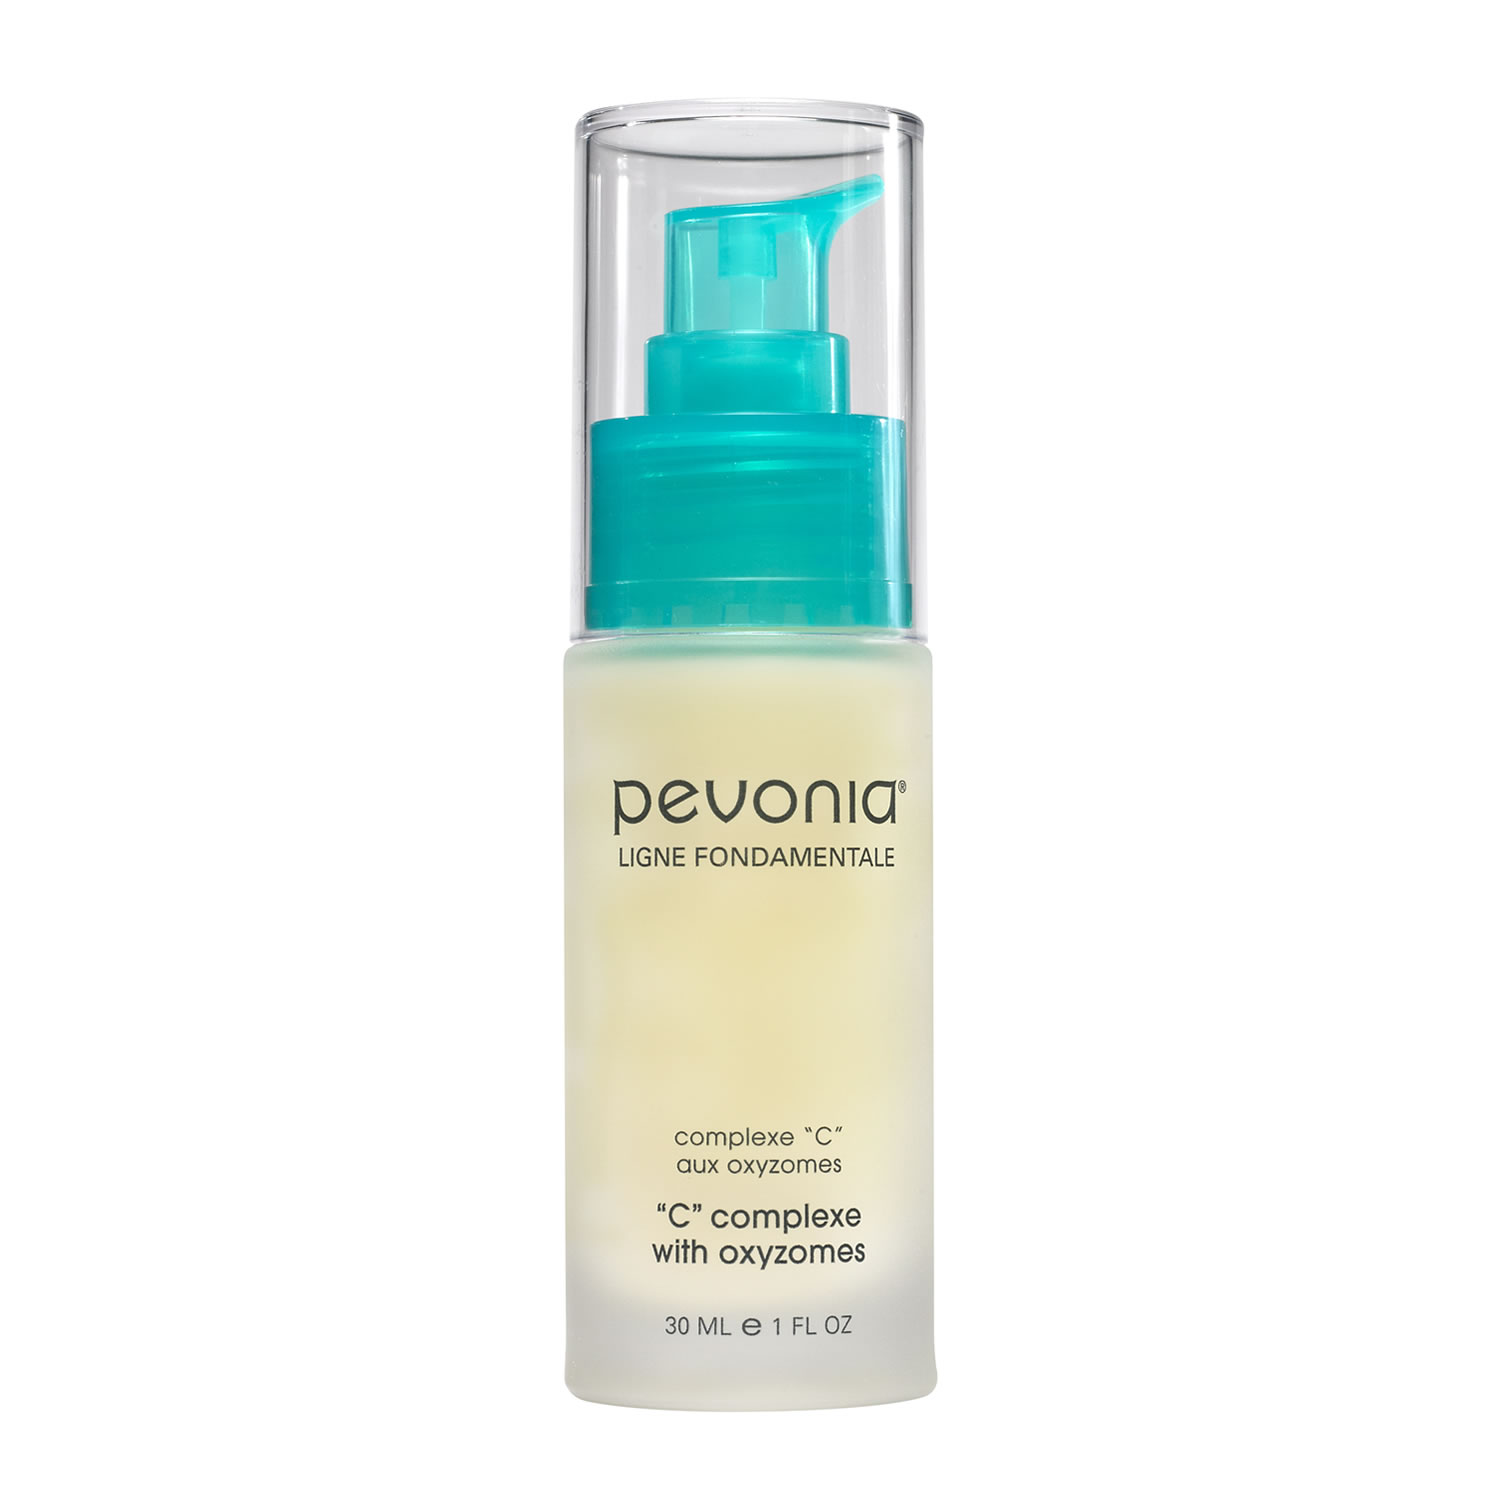 Pevonia ''C'' Complex With Oxyzomes has been specially designed to rejuvenate and revitalize the skin.